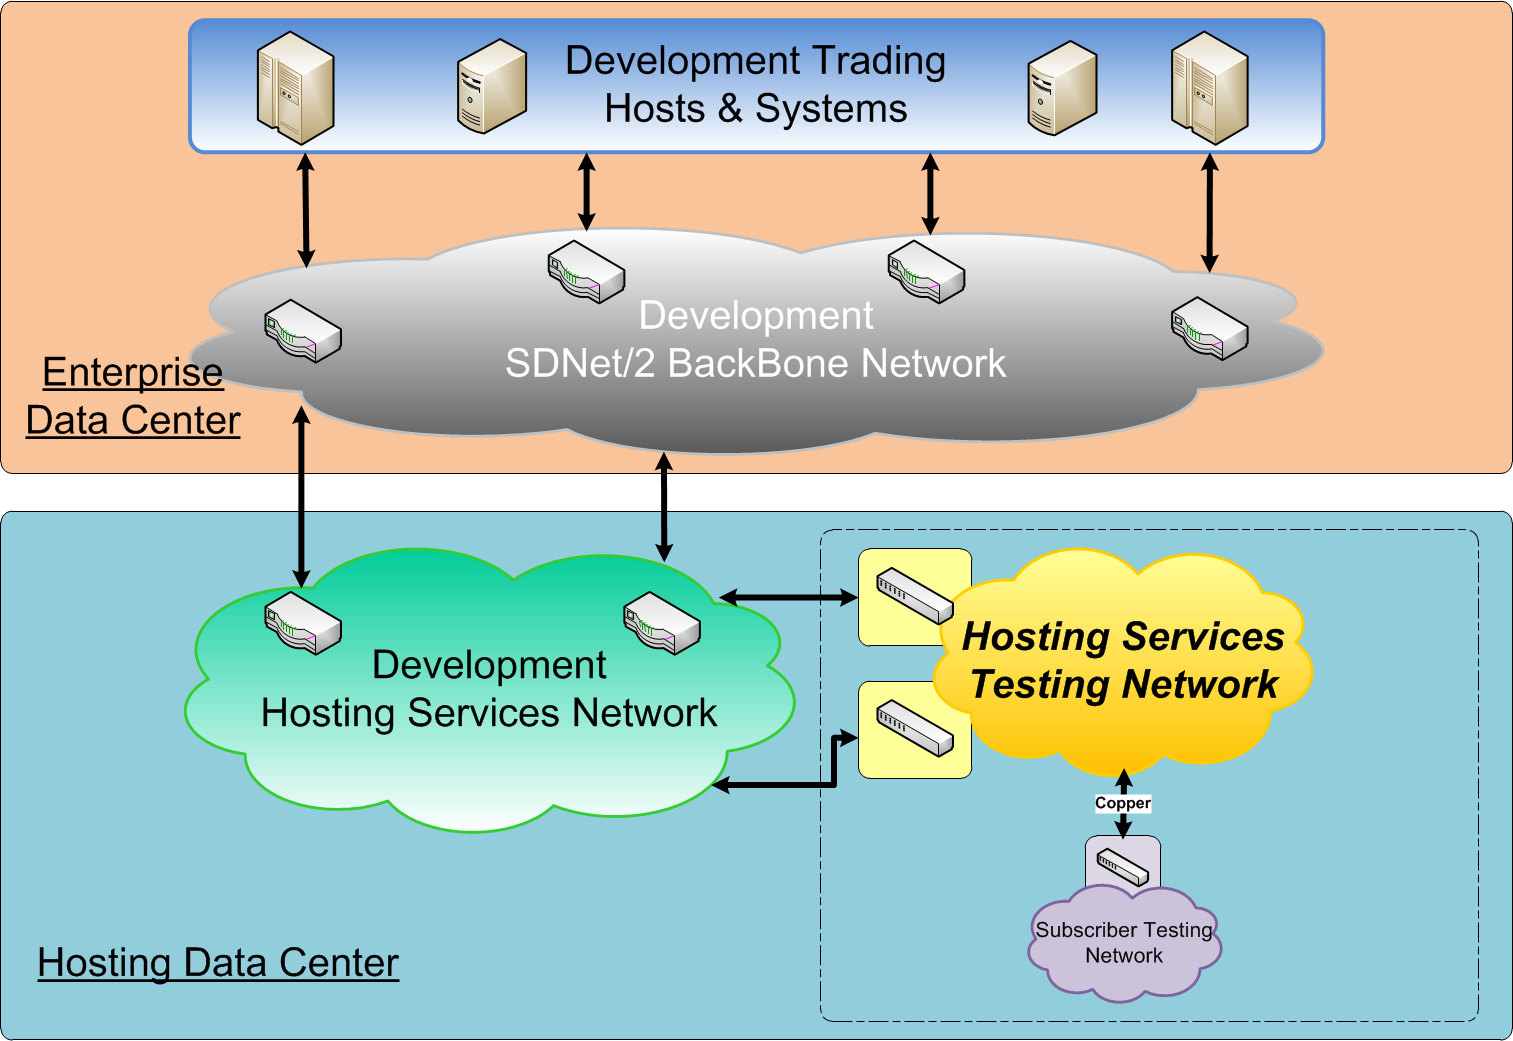 Hosting Services Testing Network (HSTN) Support for various HKEx Orion Technology initatives Orion Market Data Orion Central Gateway Genium Upgrade Eligible for Hosting Services users Exchange